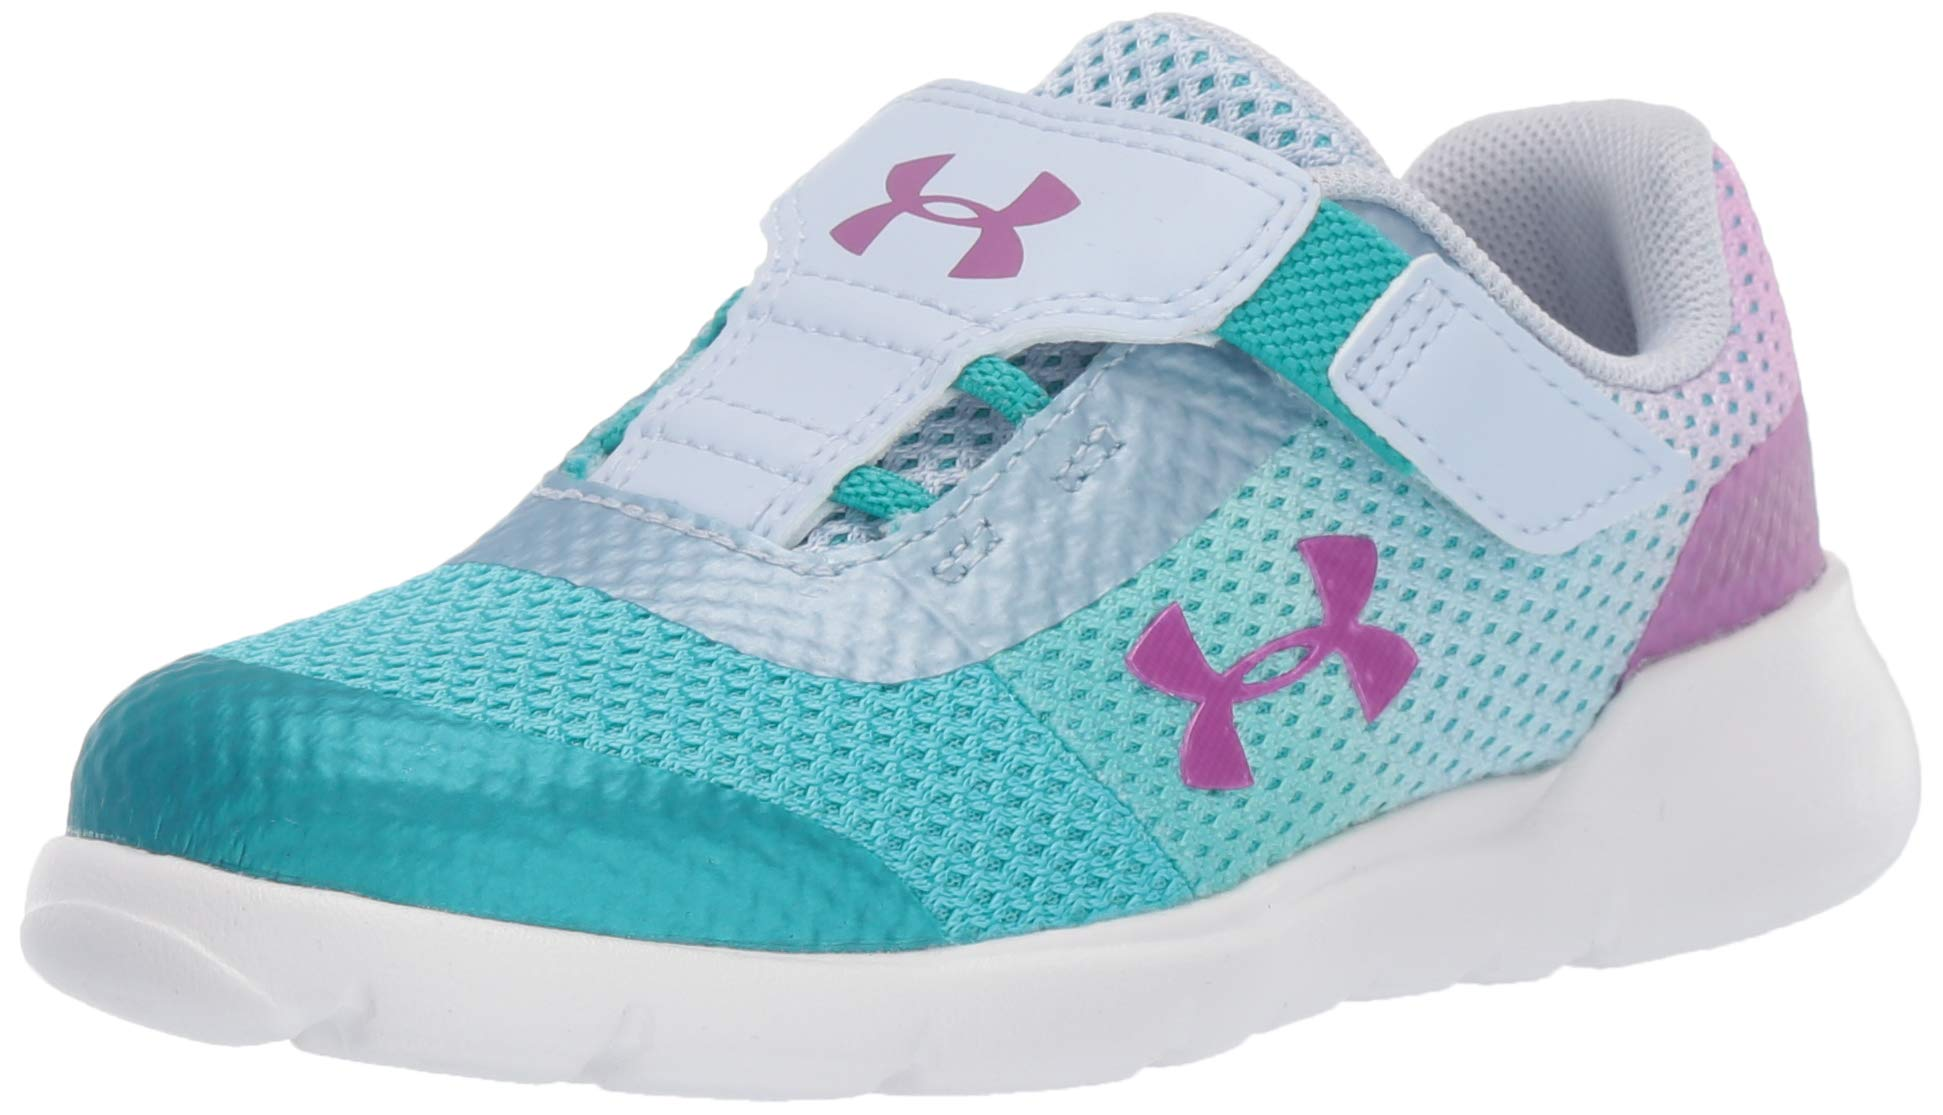 Under Armour Girls' Infant Surge RN Sneaker, Breathtaking (302)/Moonstone Blue, 10 by Under Armour